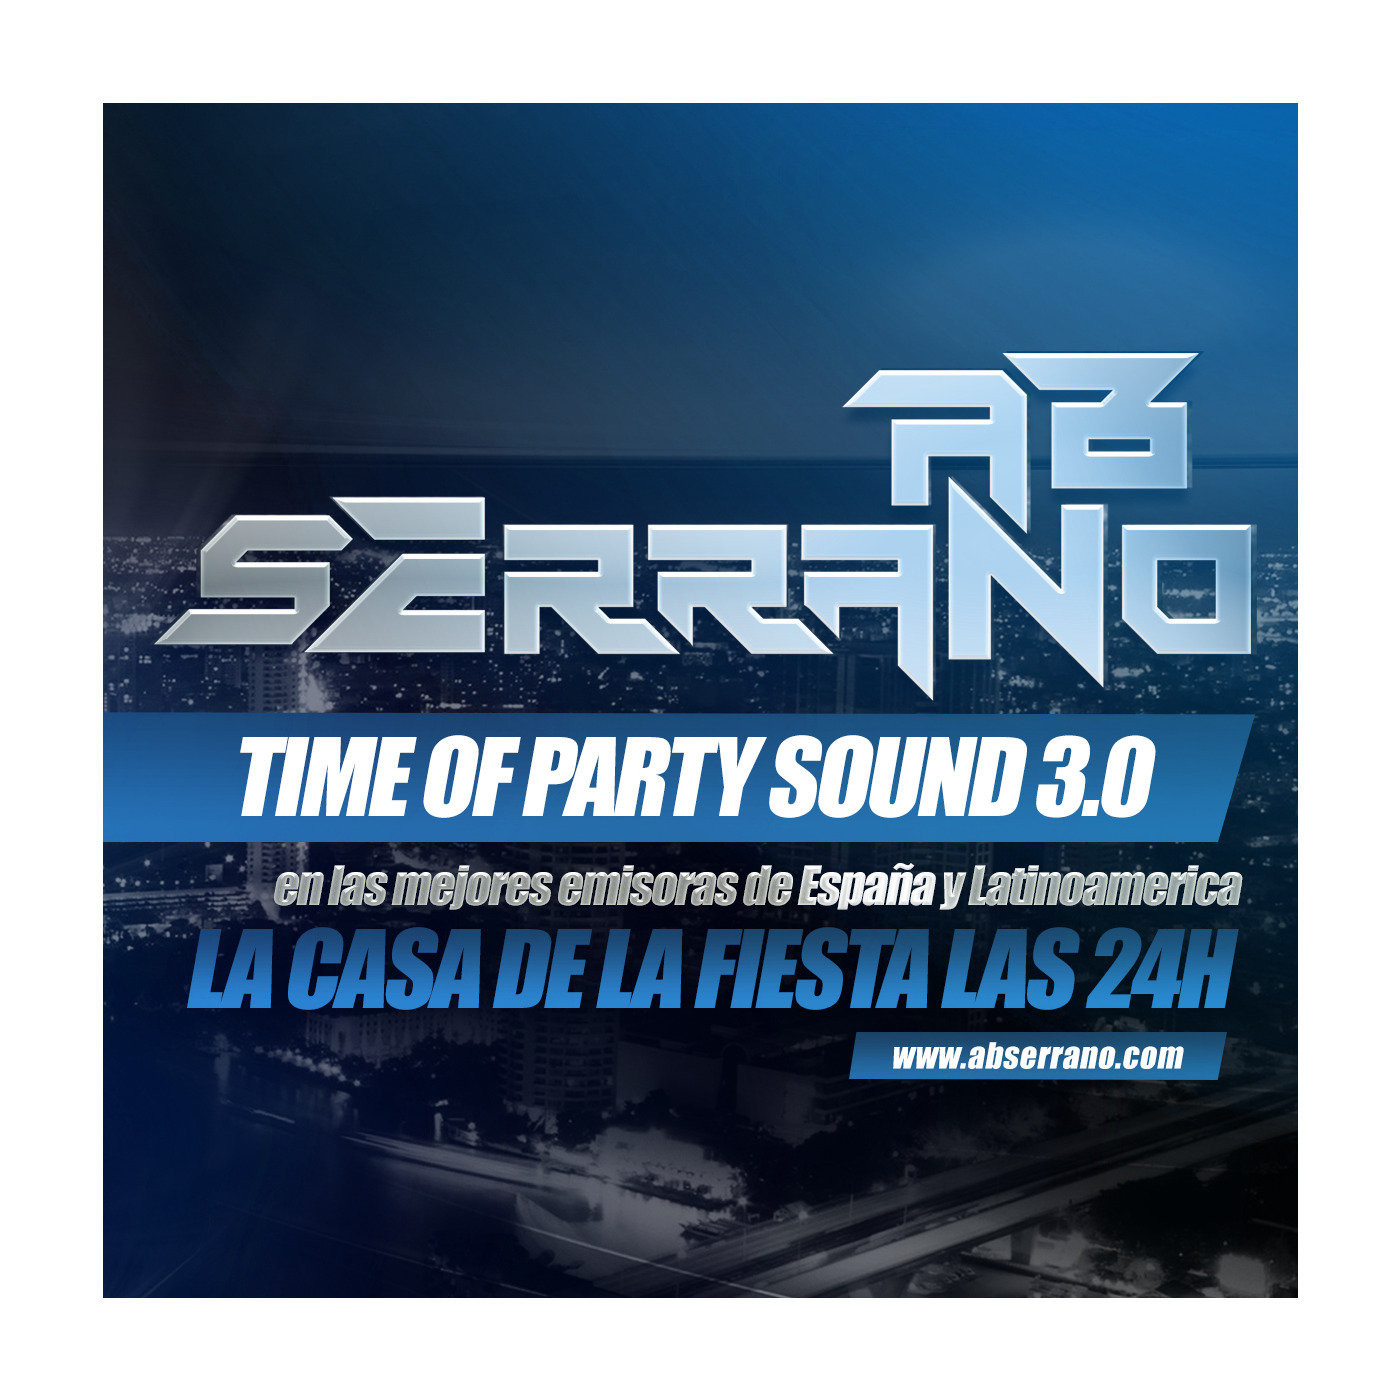 <![CDATA[TIME OF PARTY SOUND 3.0]]>